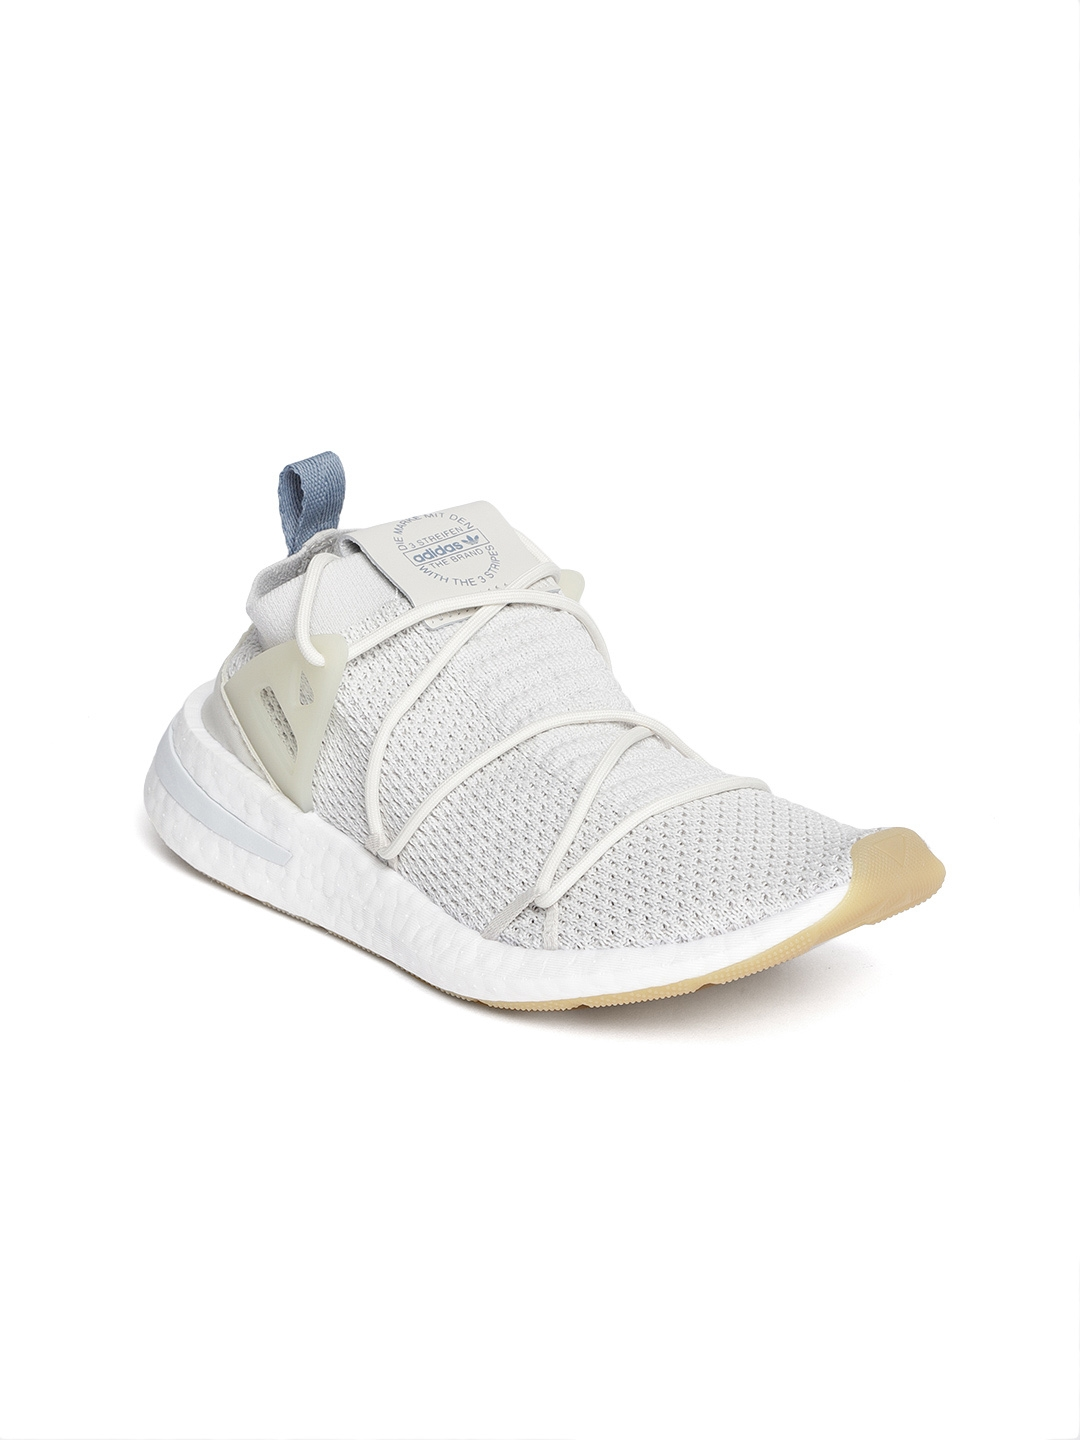 reputable site 3ff93 026c4 ADIDAS Originals Women Off-White ARKYN Primeknit Sneakers